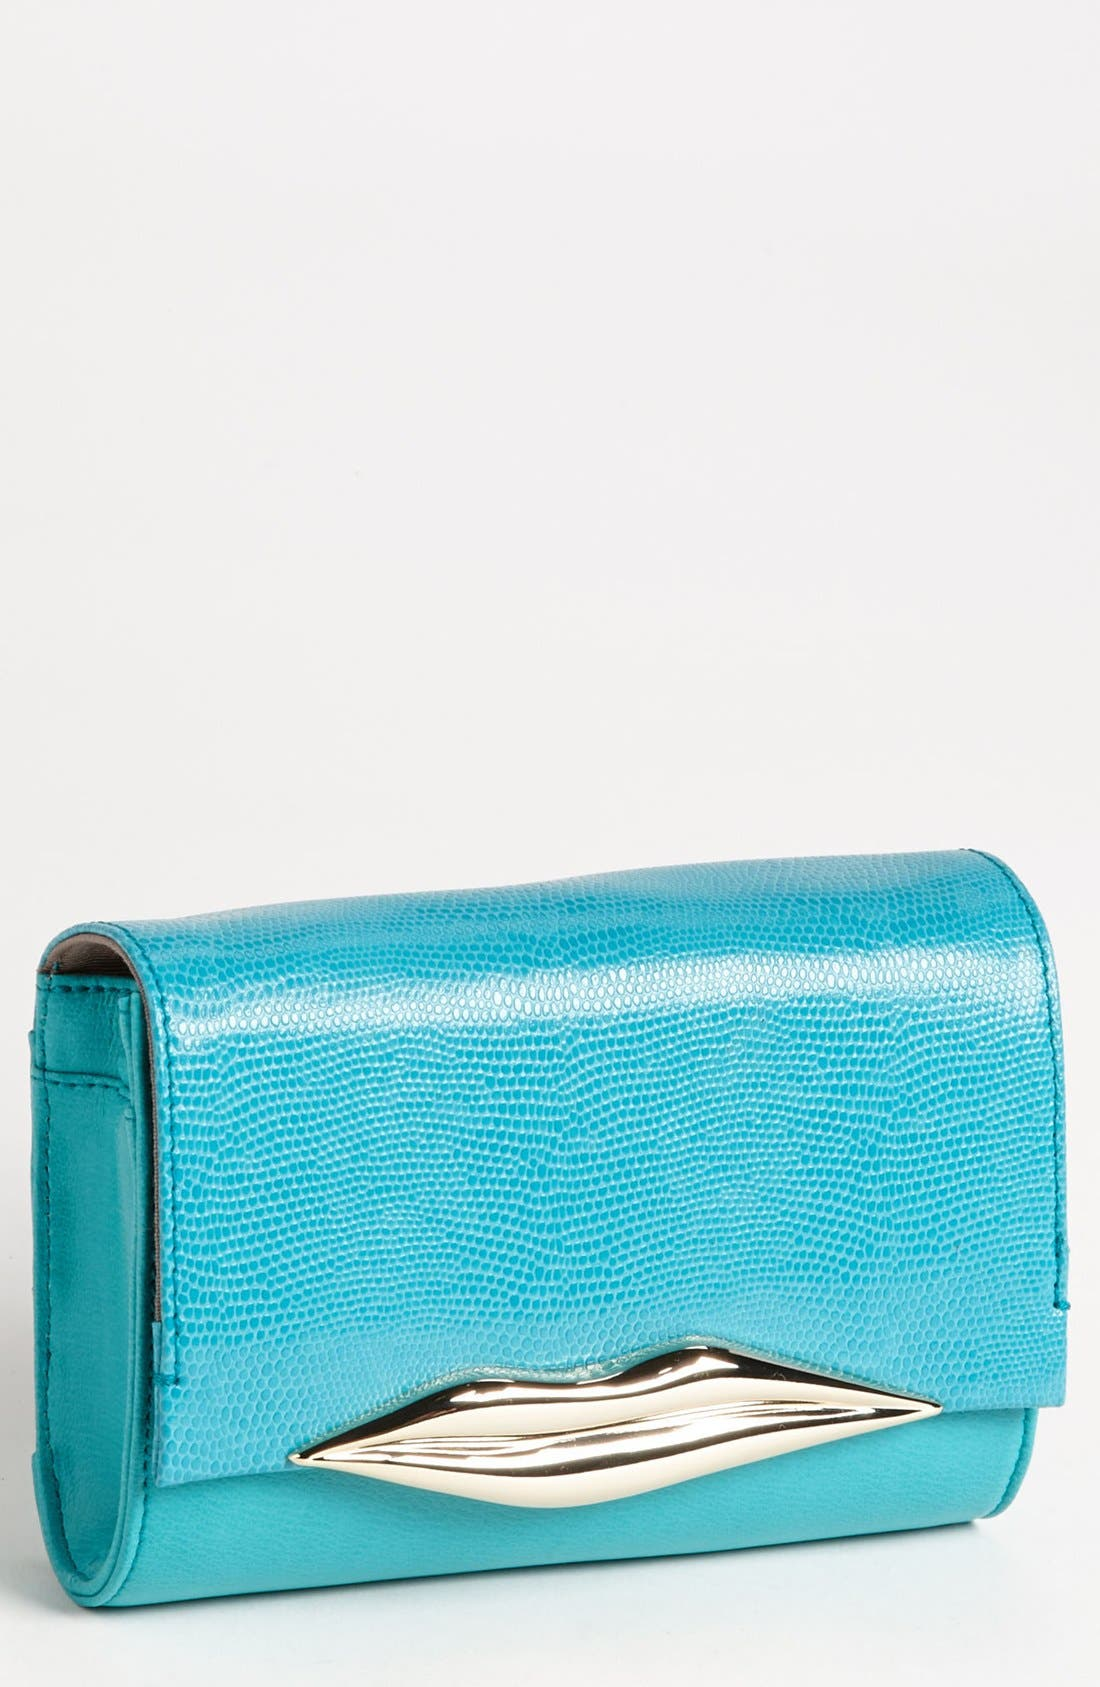 Main Image - Diane von Furstenberg 'Lips - Mini' Embossed Leather Clutch